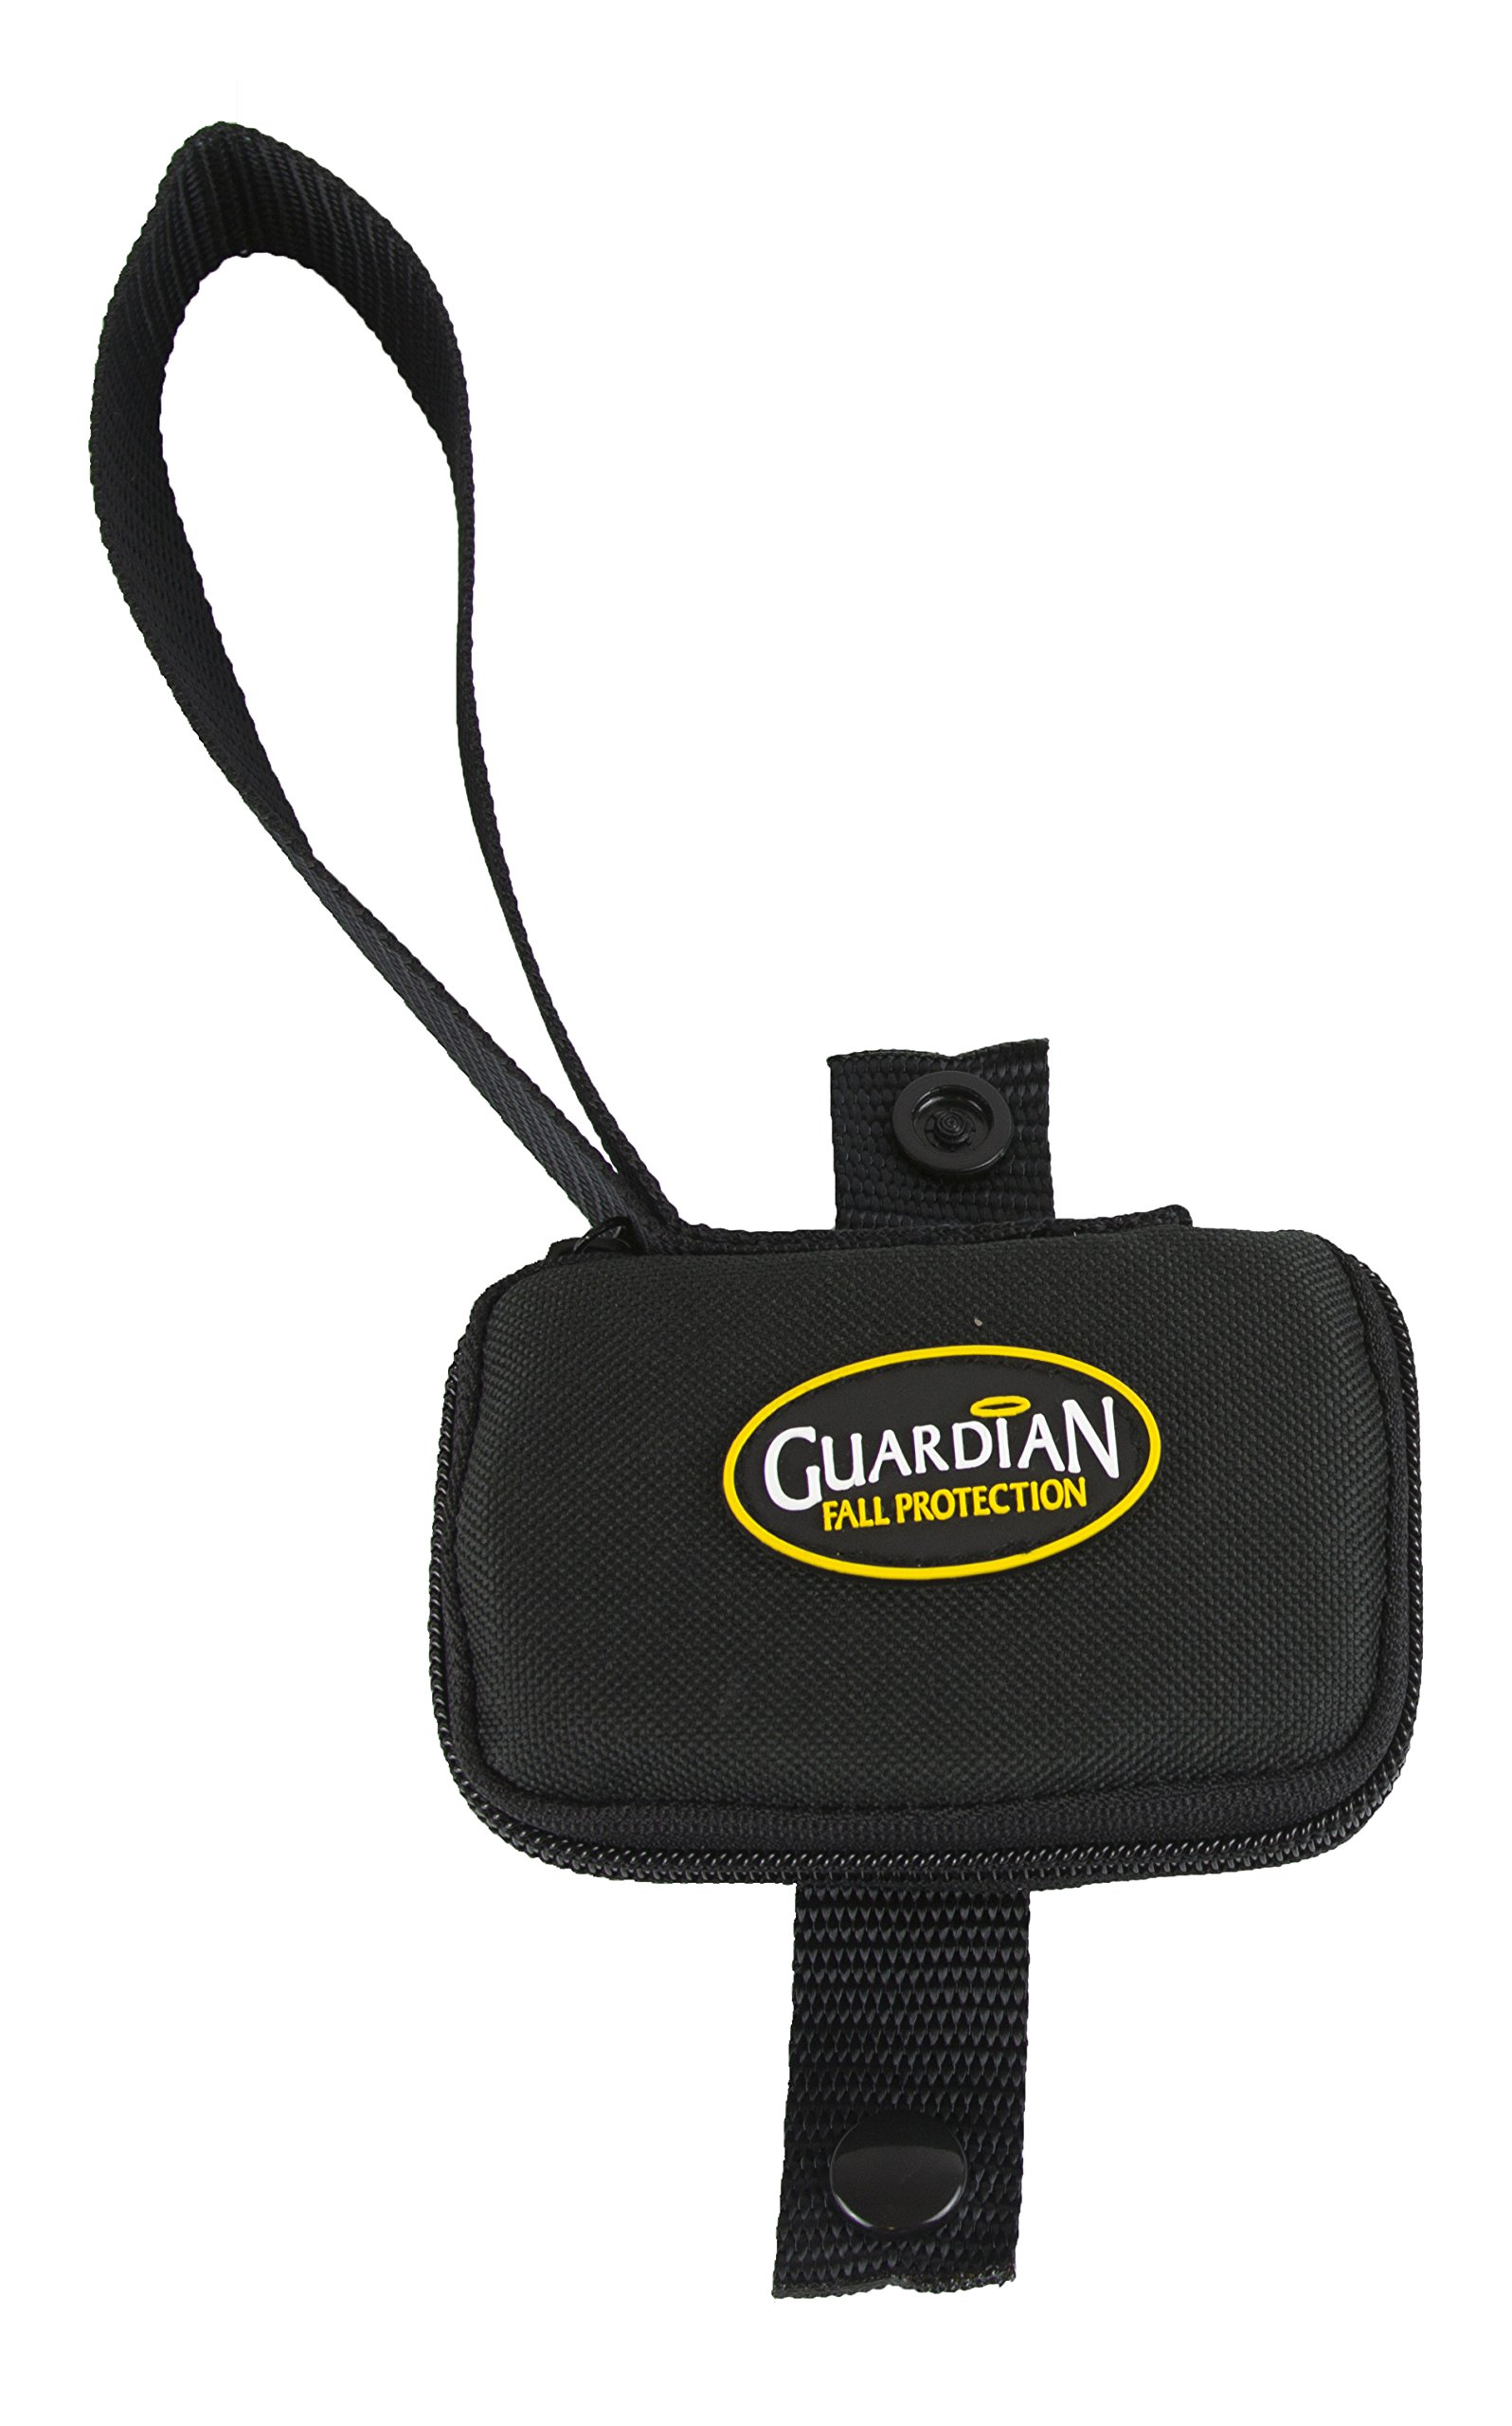 Guardian Fall Protection 10733 Trauma Strap by Guardian Fall Protection